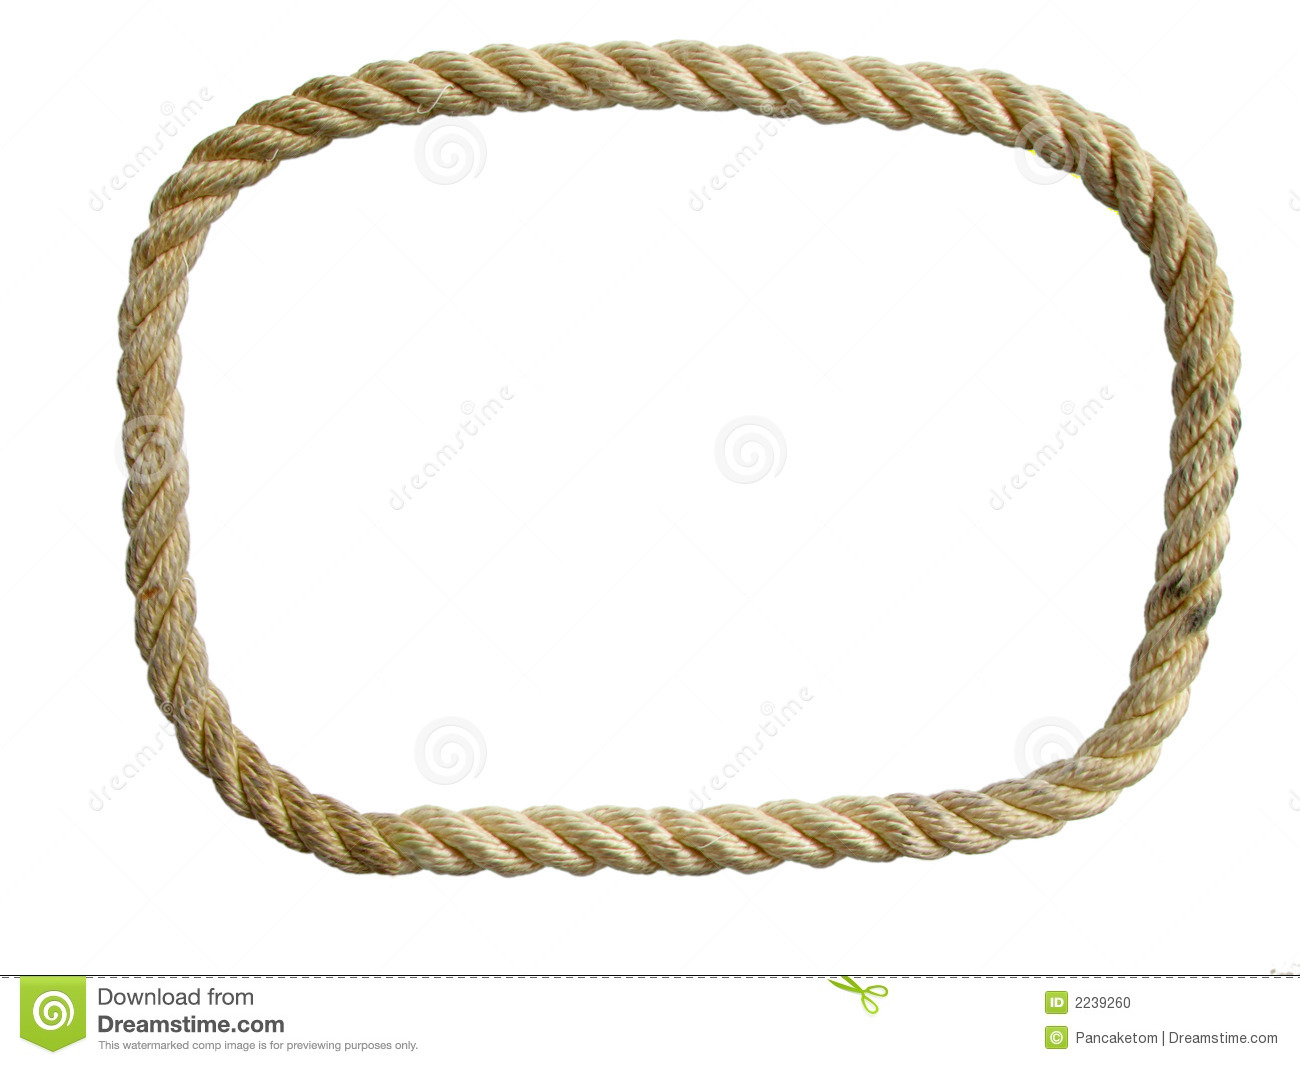 Endless used nylon rope loop isolated on white background.